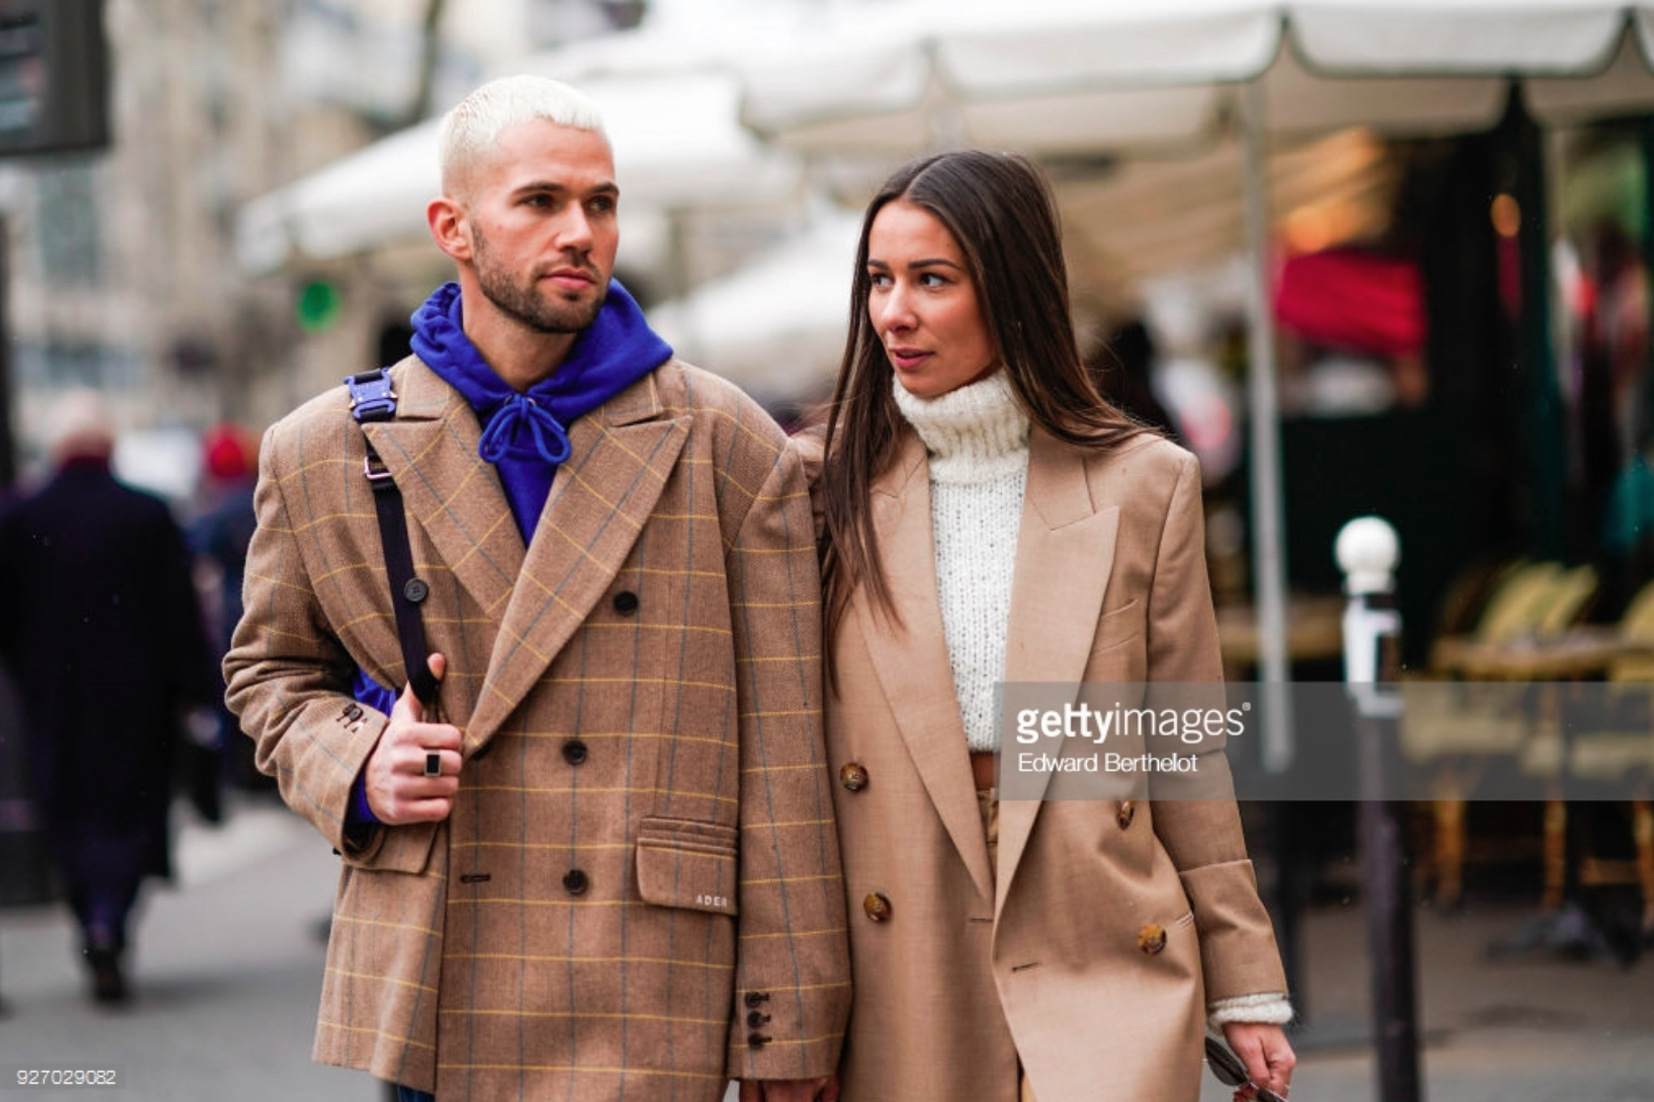 getty images street style couple